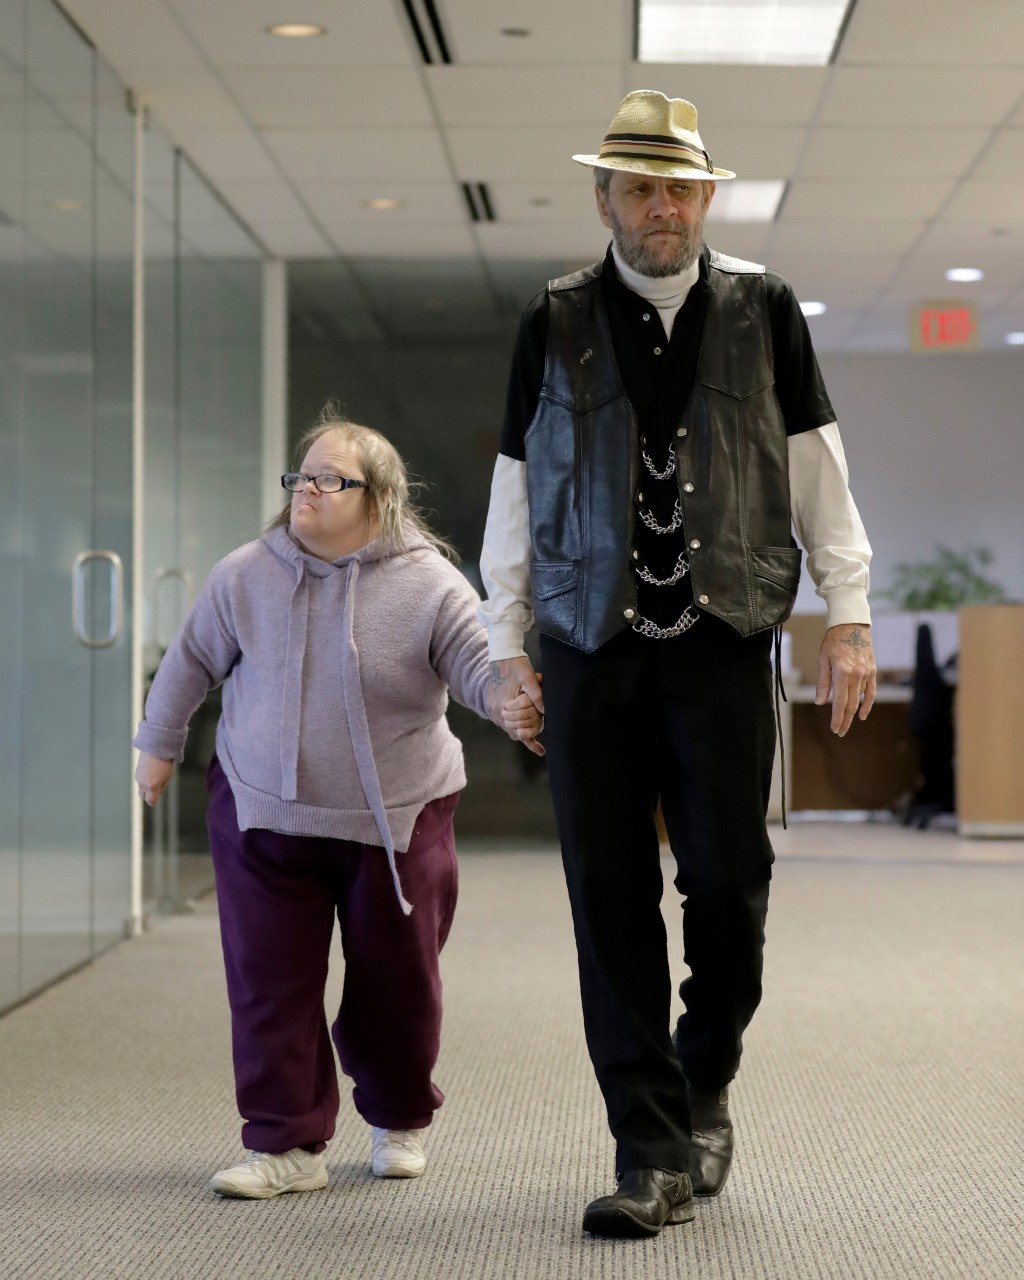 In this Saturday, Dec. 21, 2019 photo, Bobby Goldberg and his sister Debbie arrive at the office of his lawyer, Melissa Anderson, in Bannockburn, Ill....